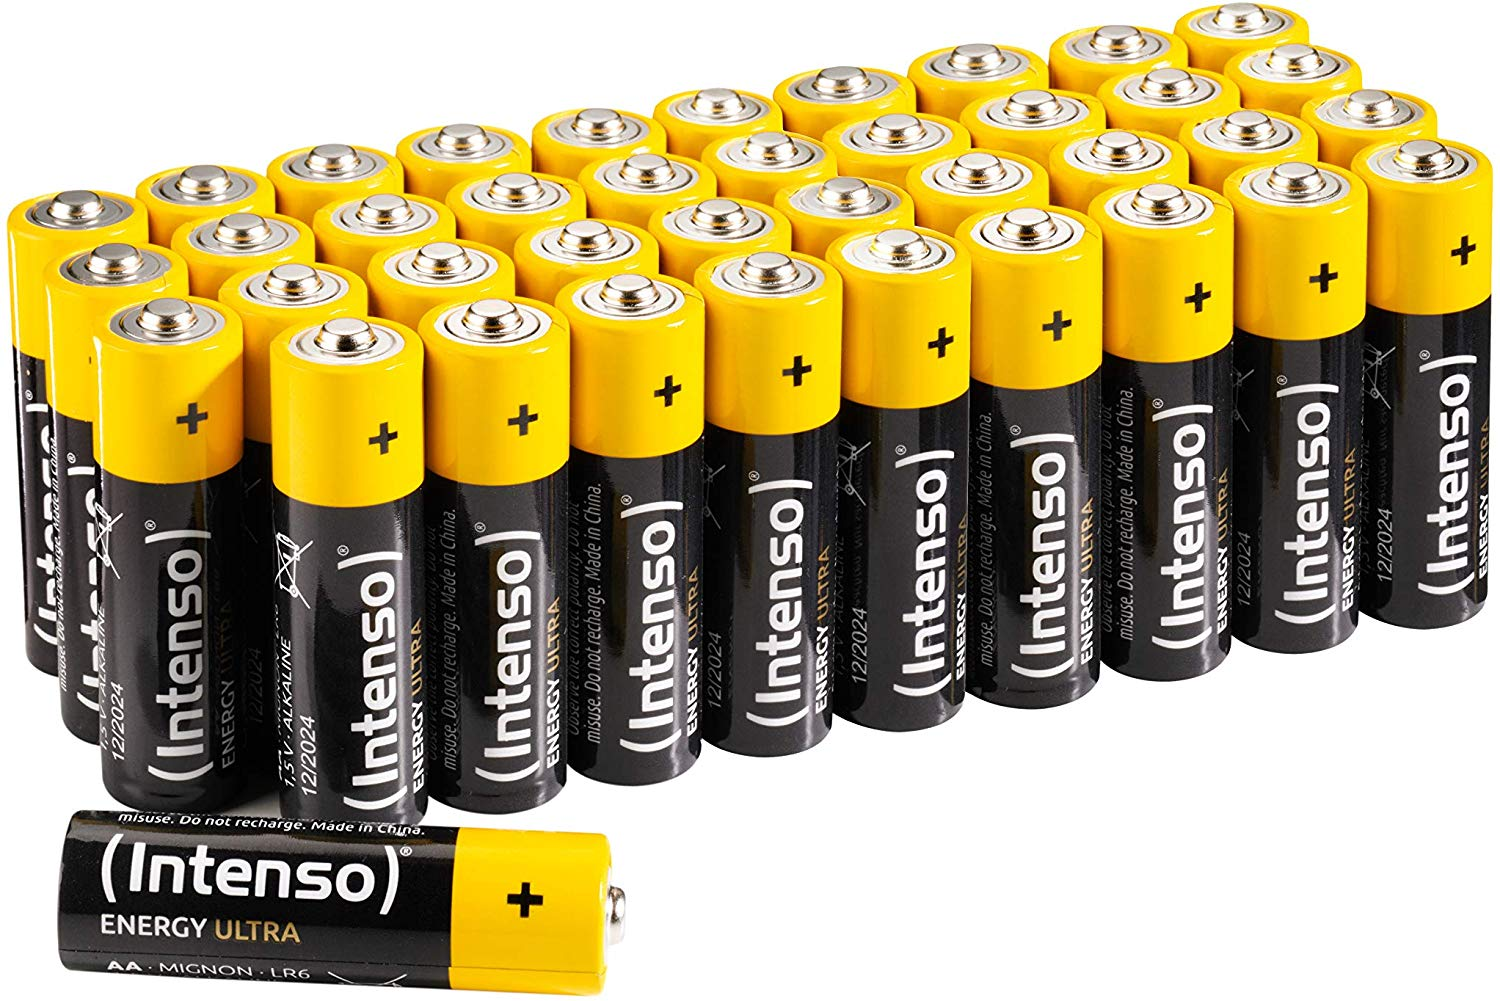 Intenso AA Batterien amazon